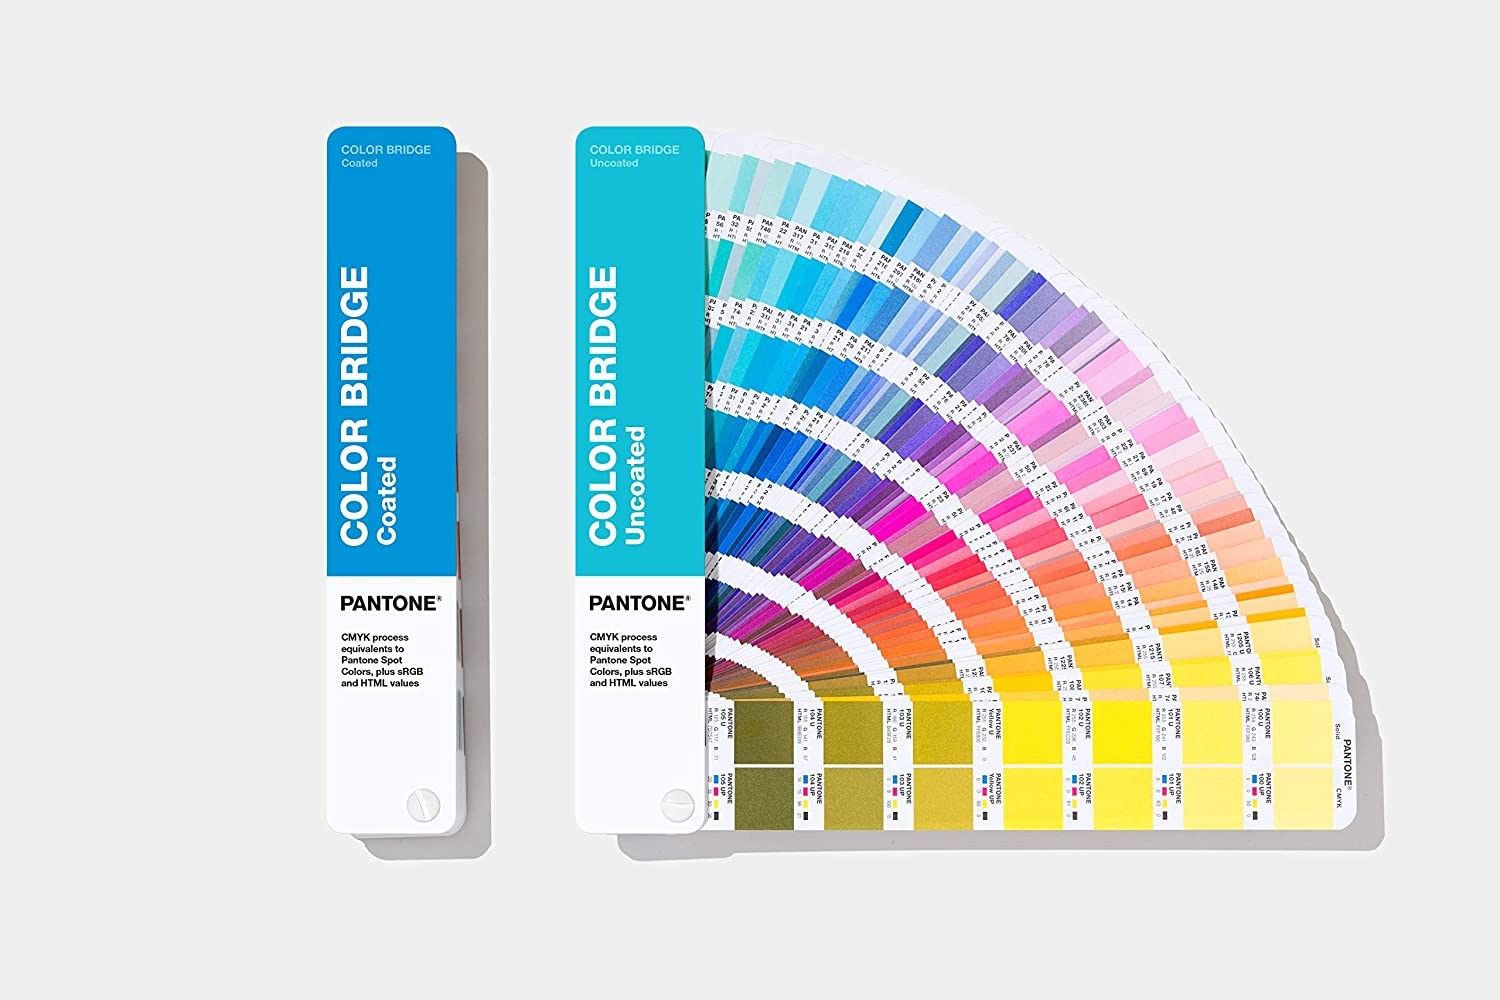 Pantone GP6102A Set- 2020 Edition Coated and Uncoated Color Bridge Set, Multicolored